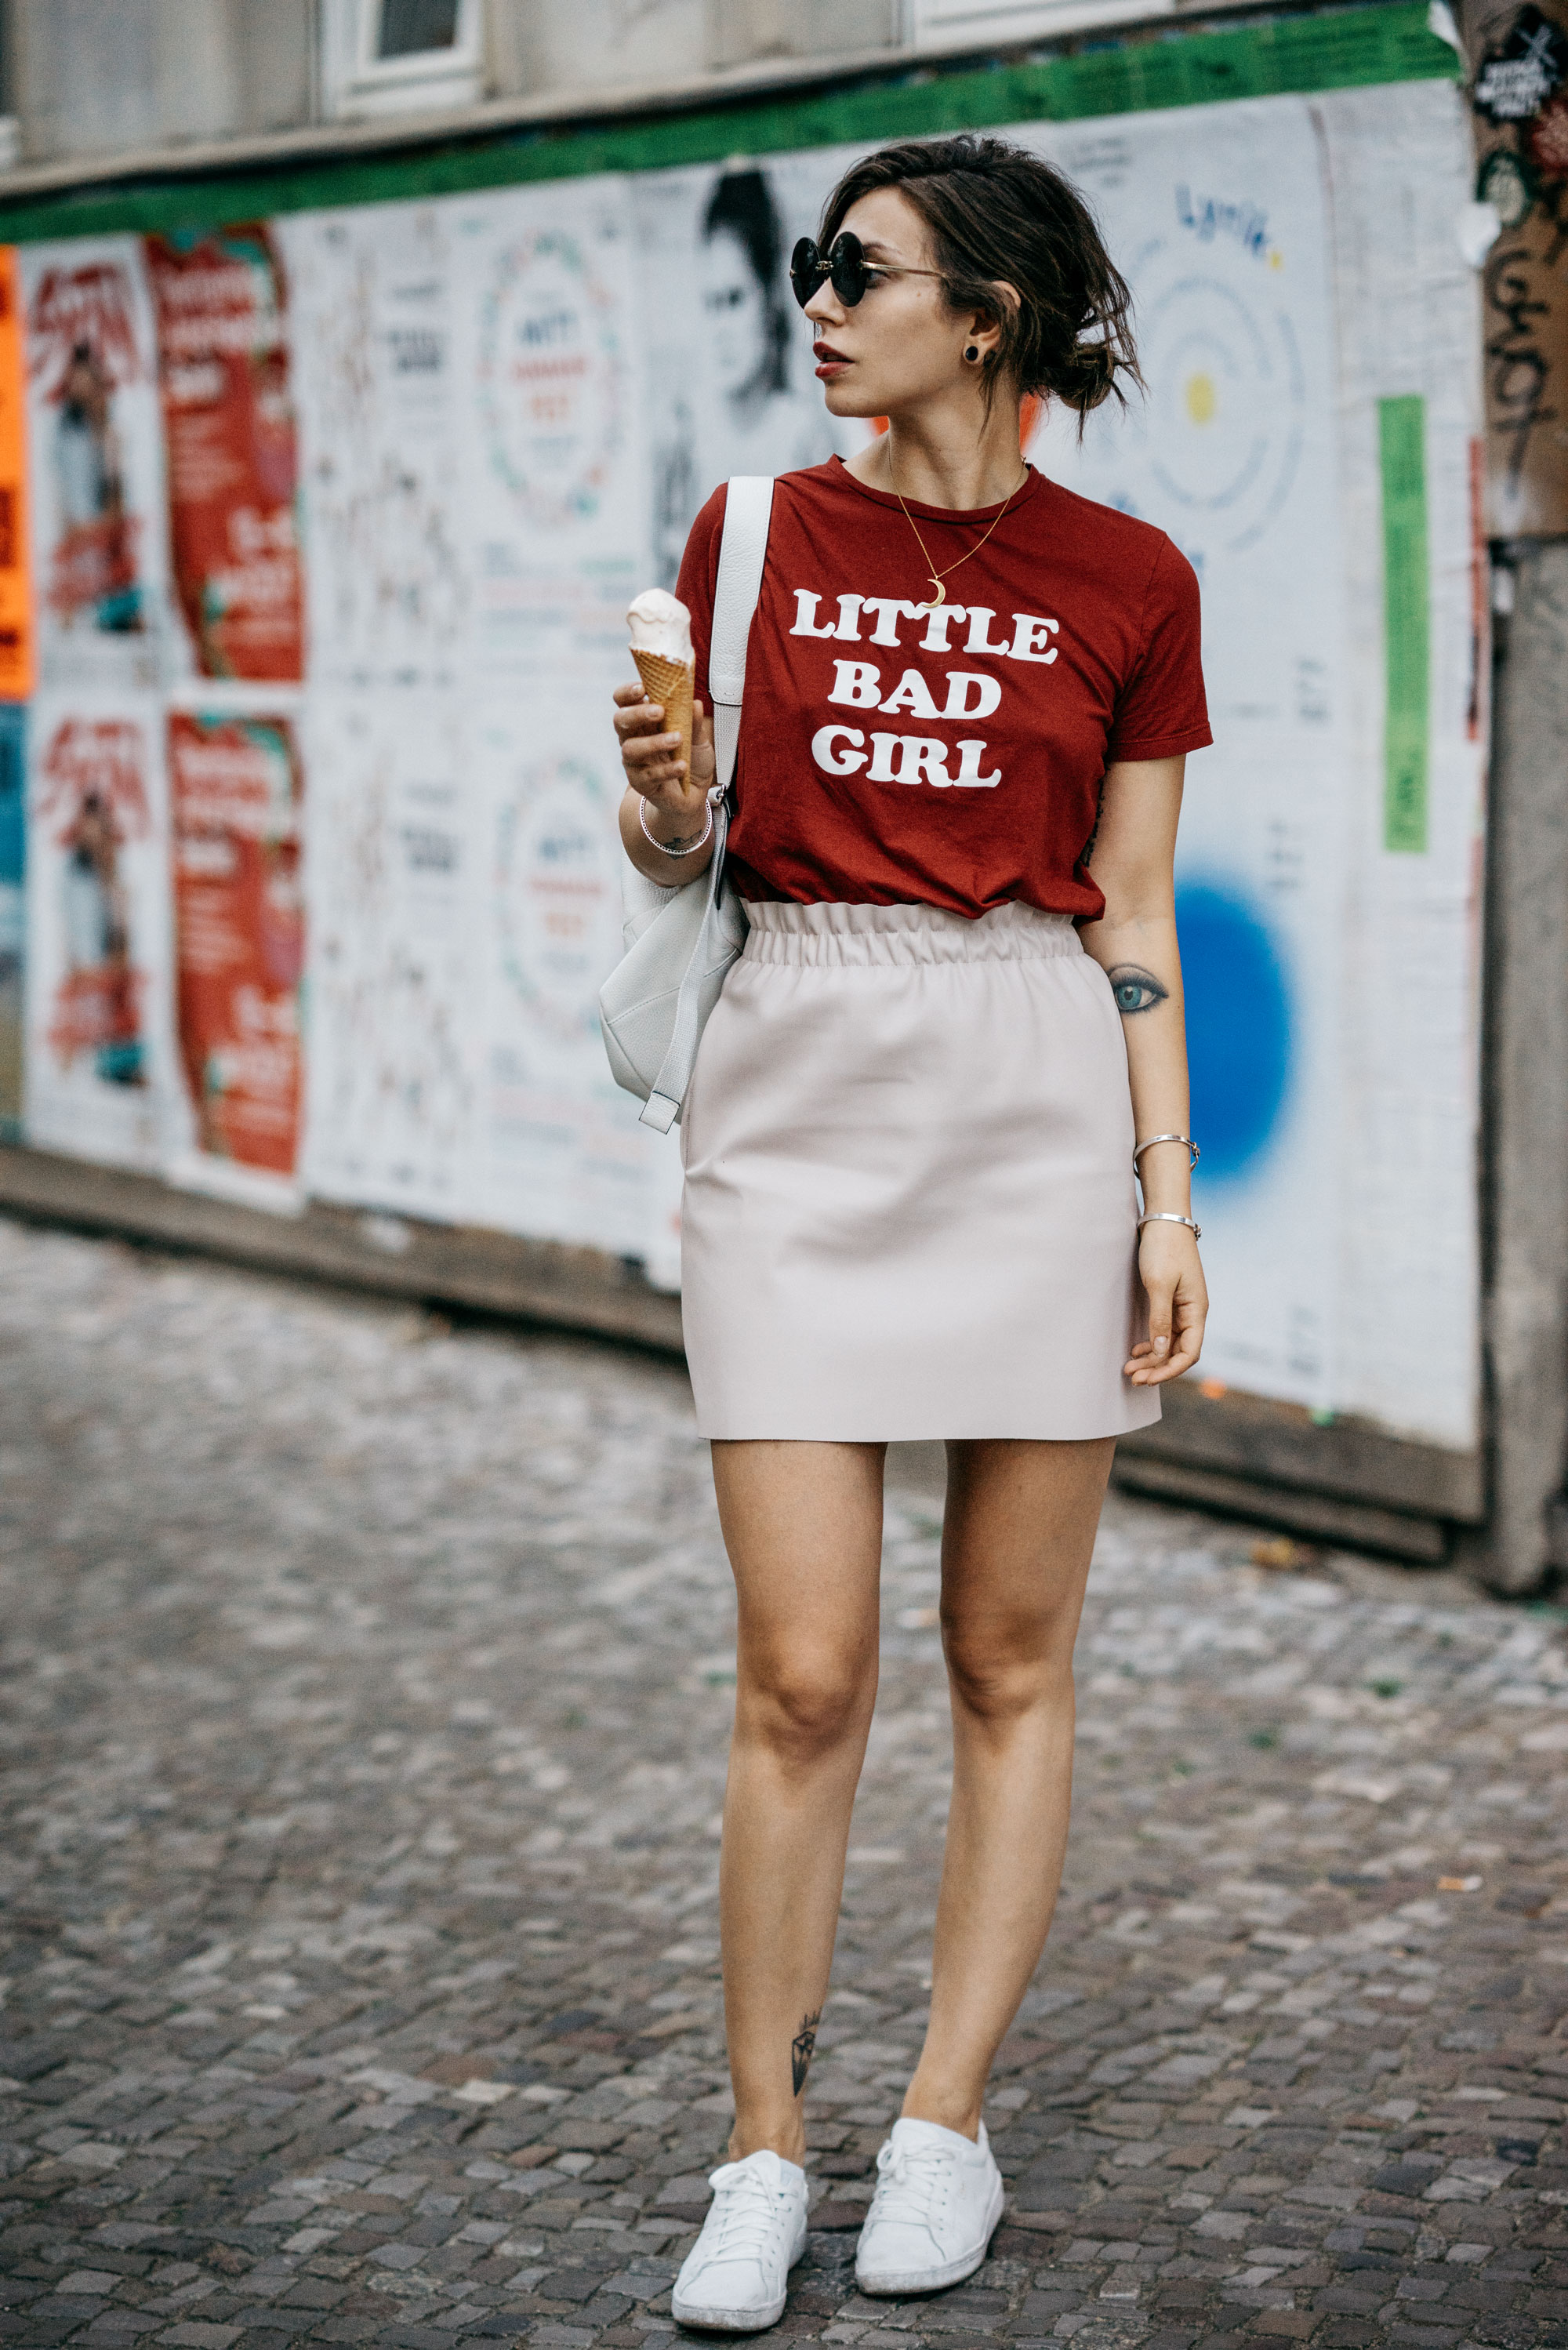 Little Bad Girl Shirt | Sommer Outfit